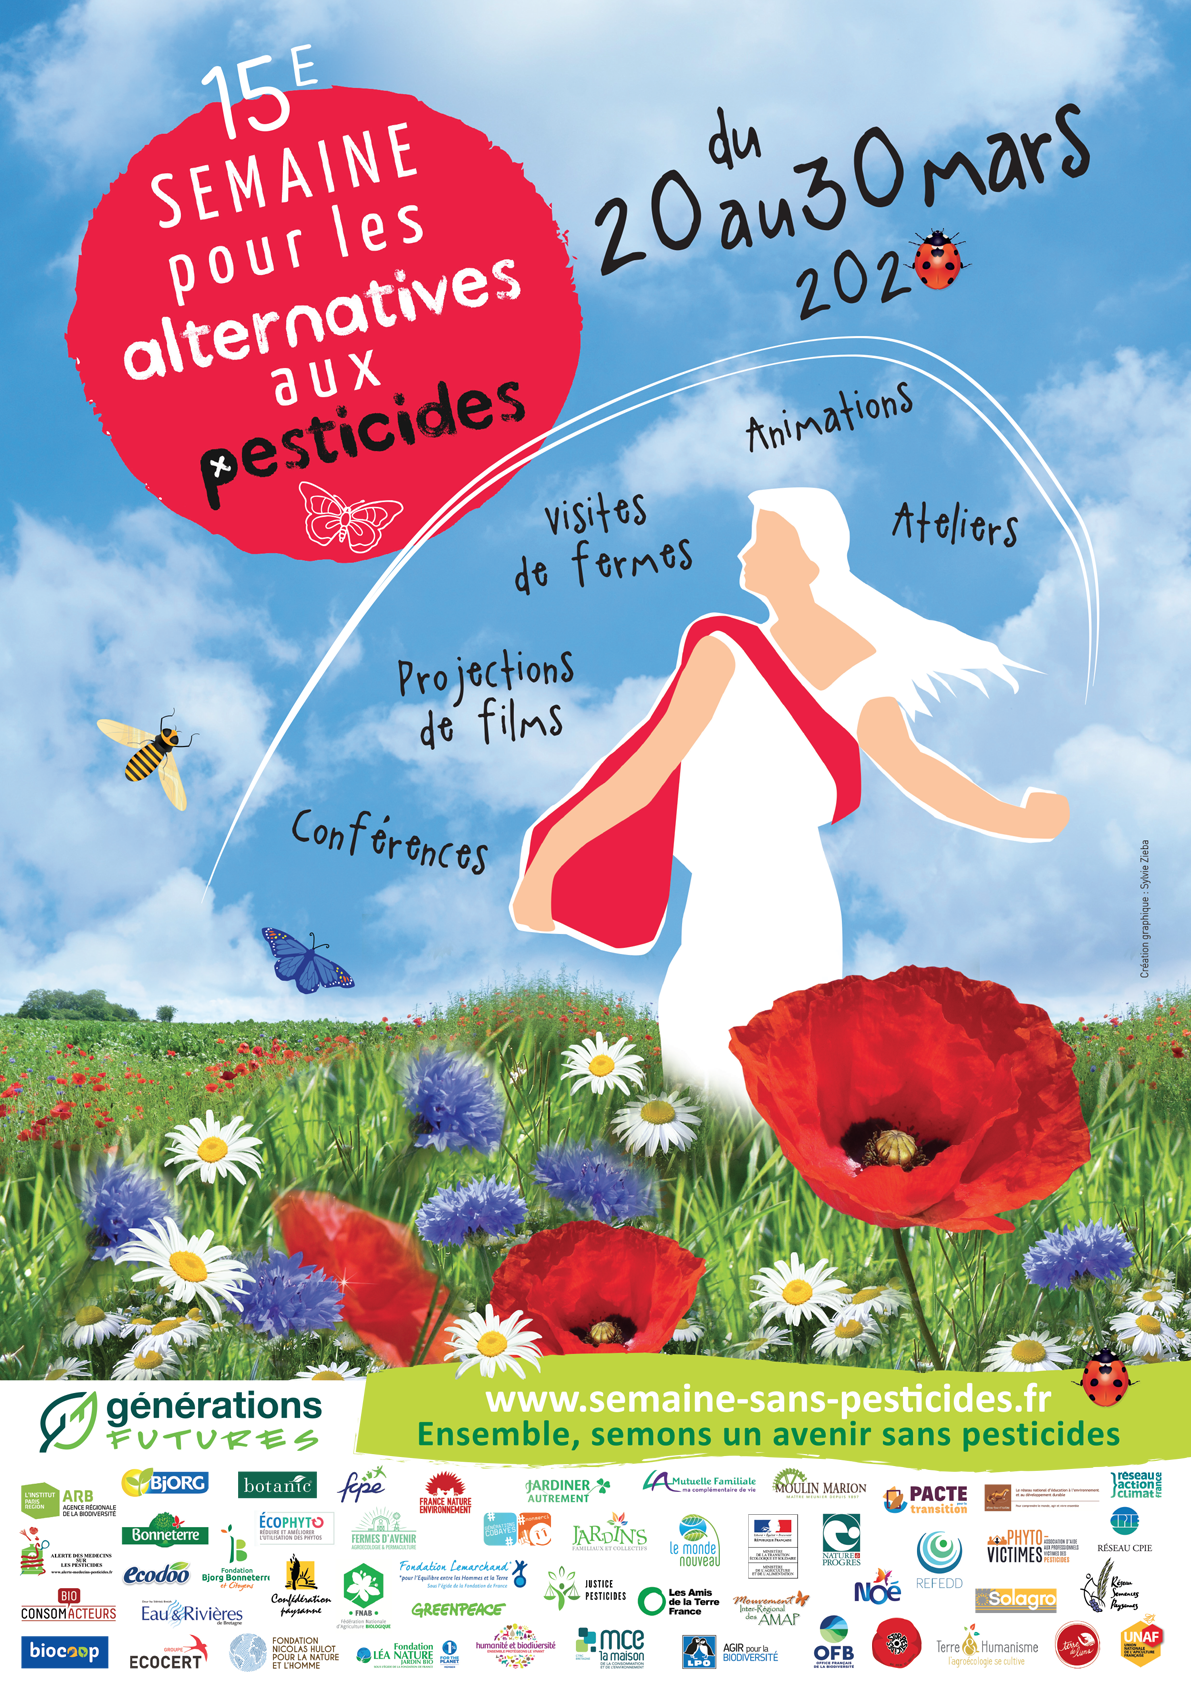 https://www.semaine-sans-pesticides.fr/wp-content/uploads/2019/12/affiche-web.png